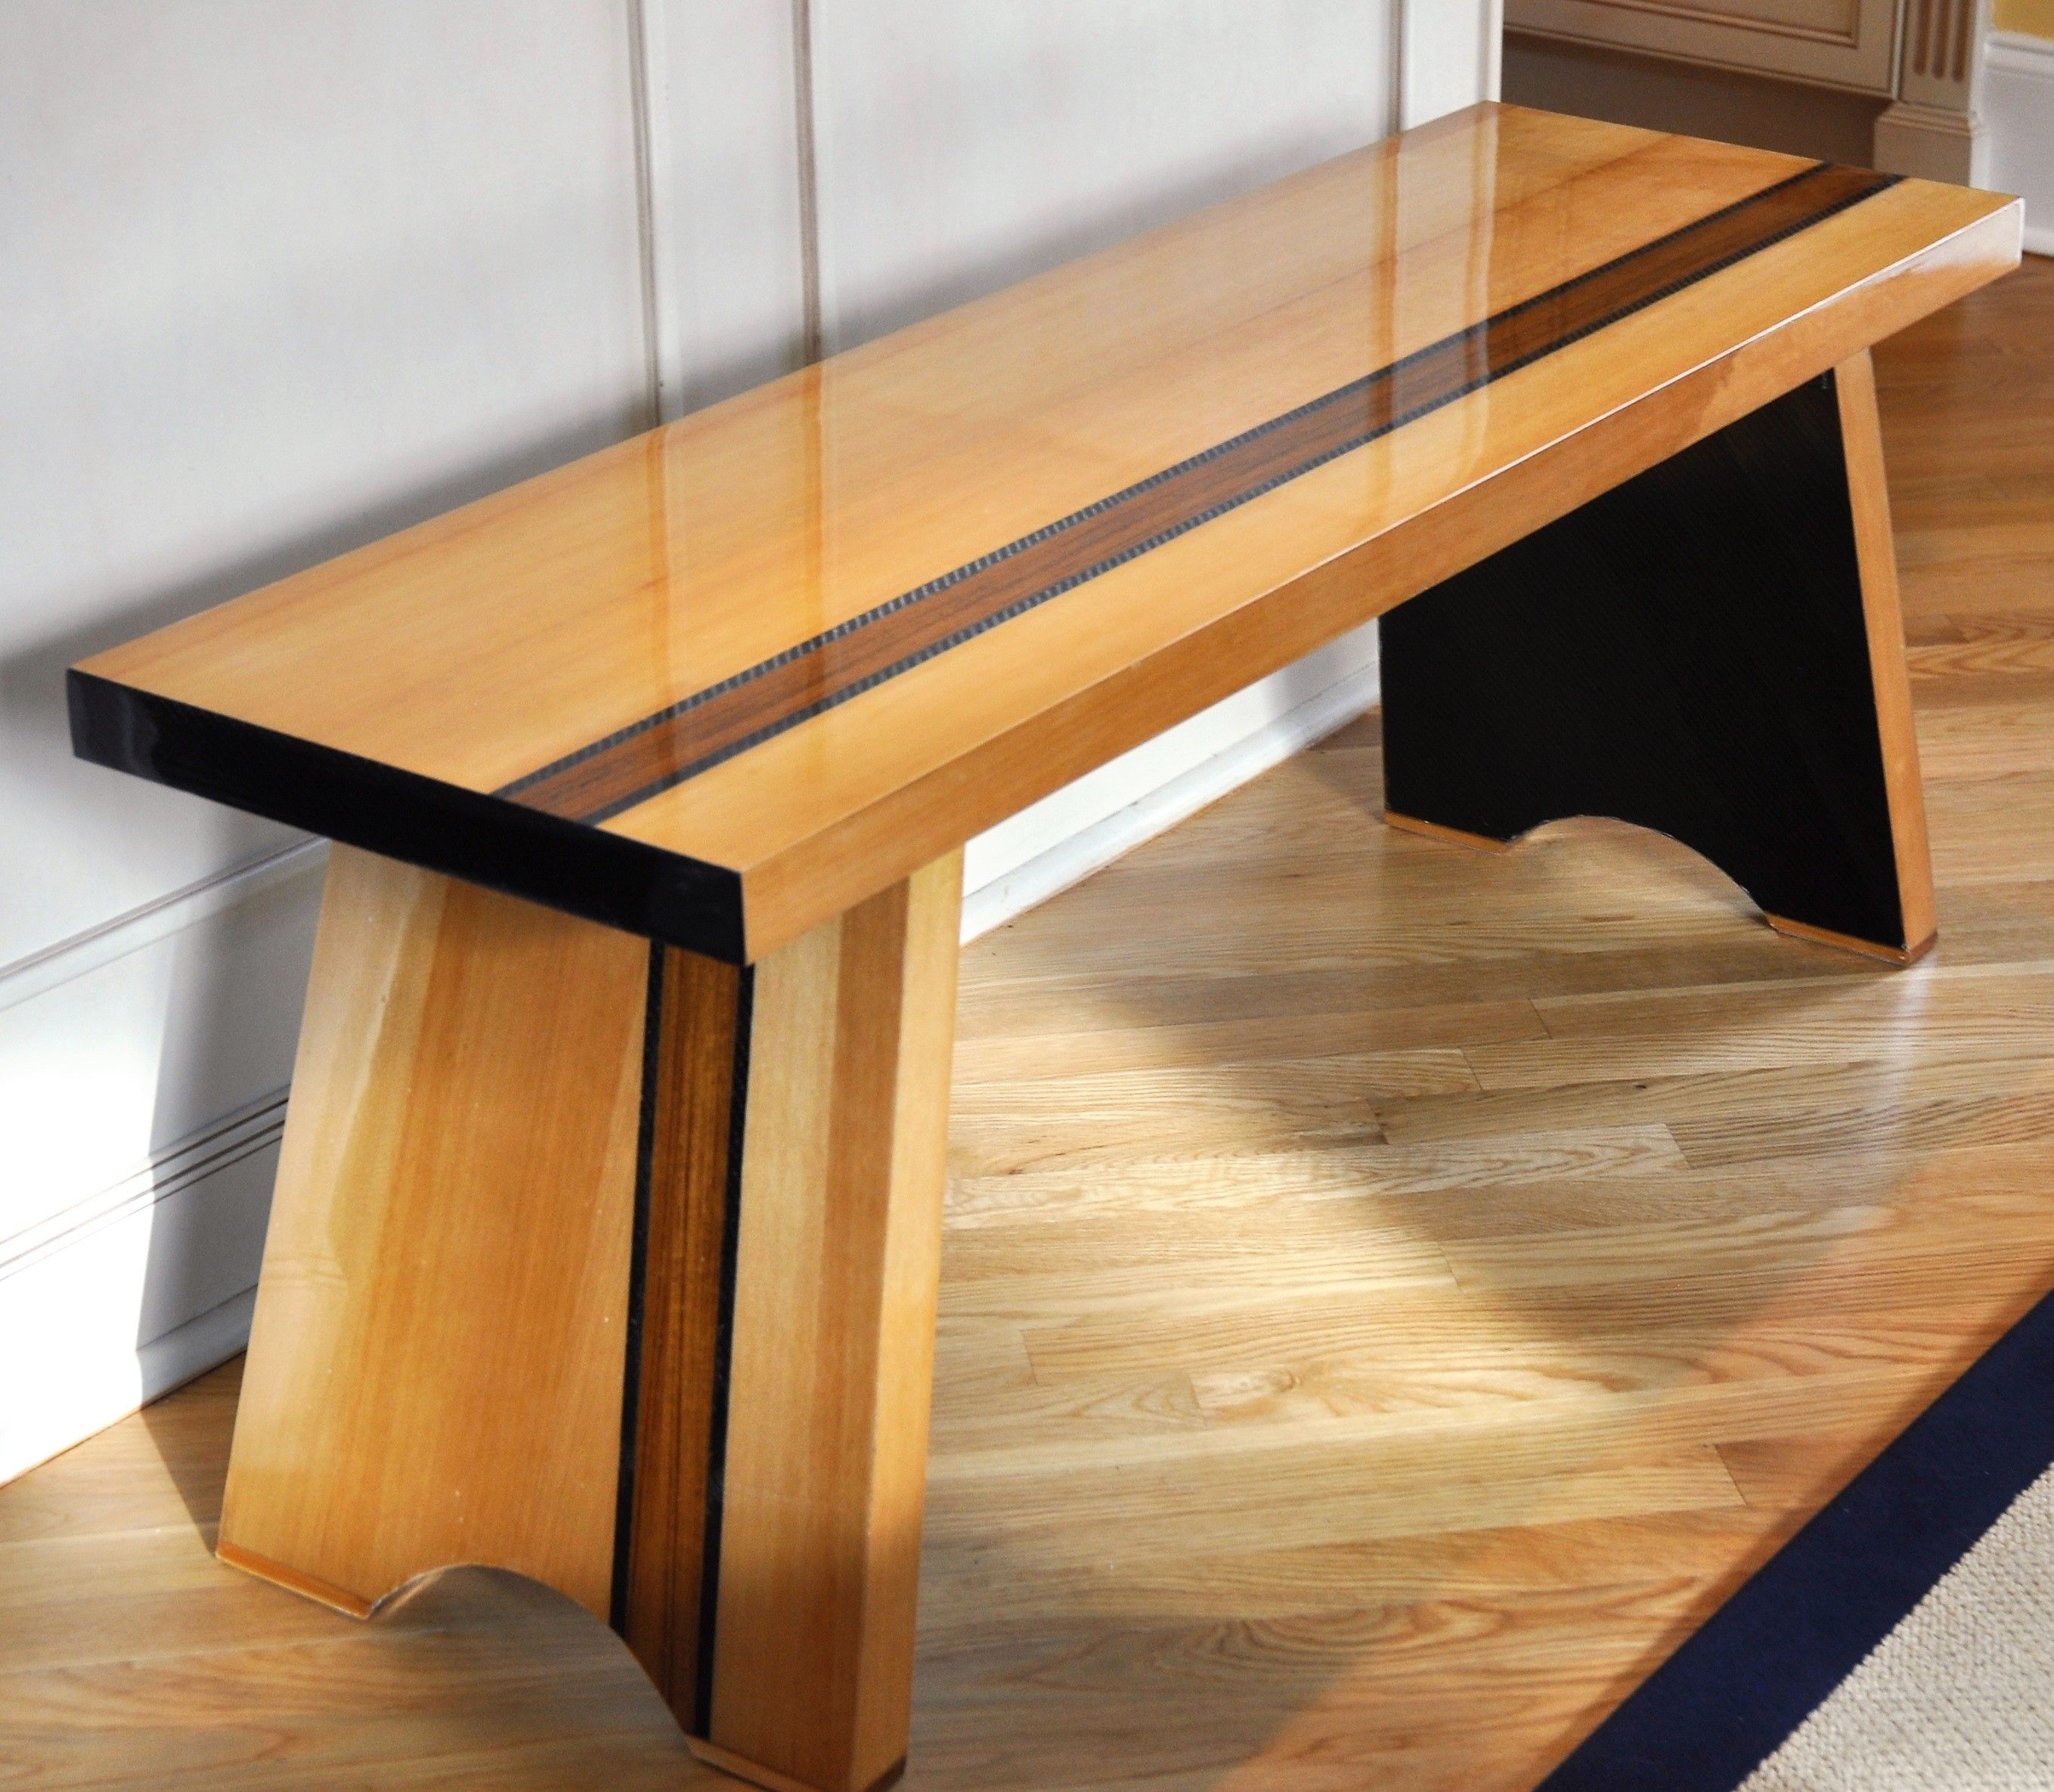 Carbon Fiber Bench With Cedar And Teak Accents Cool Furniture